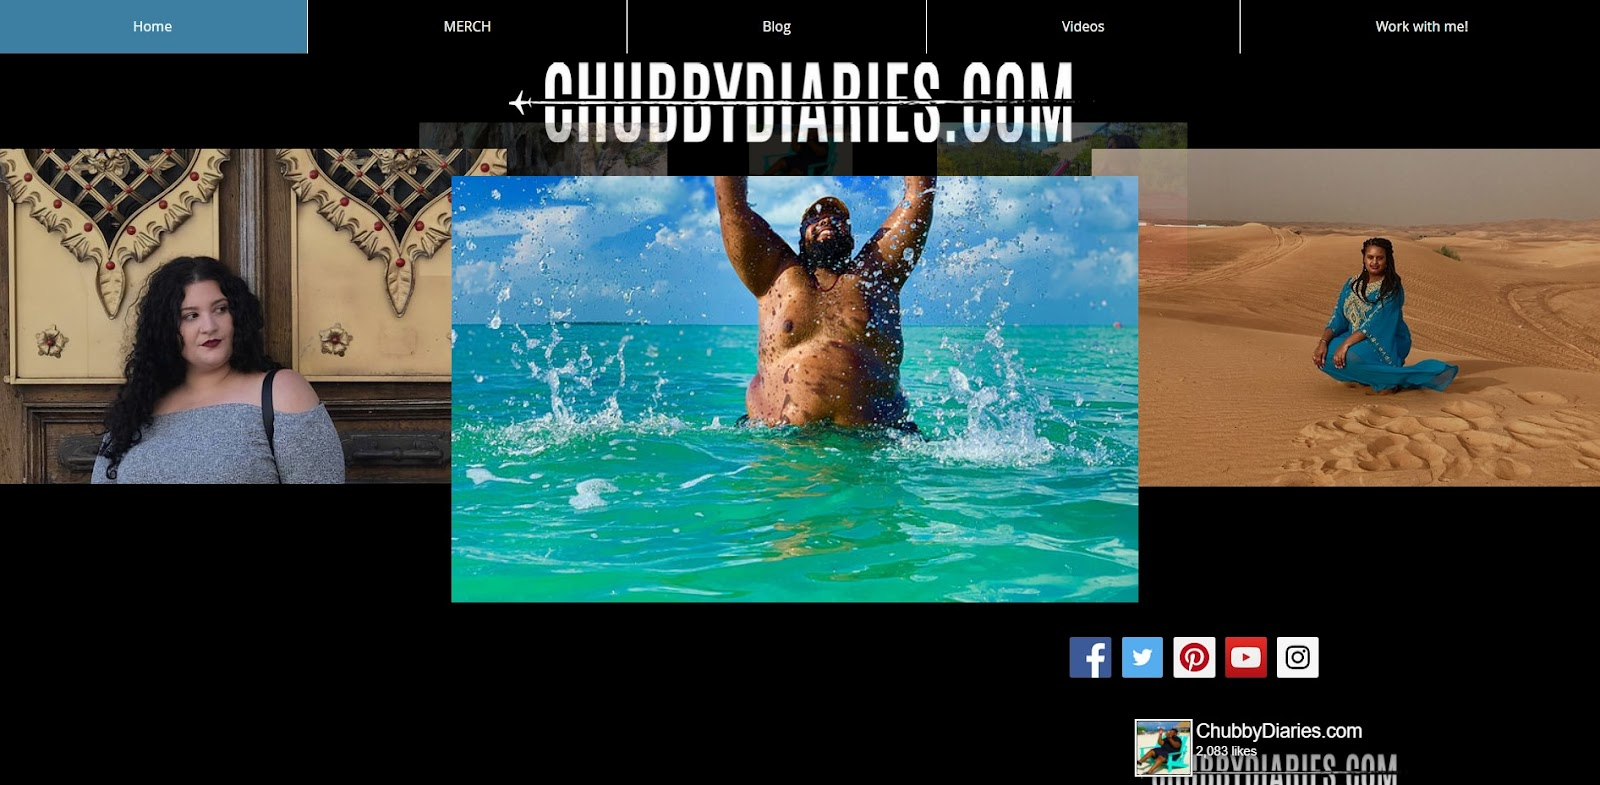 digital-nomad-website-of-chubby-diaries